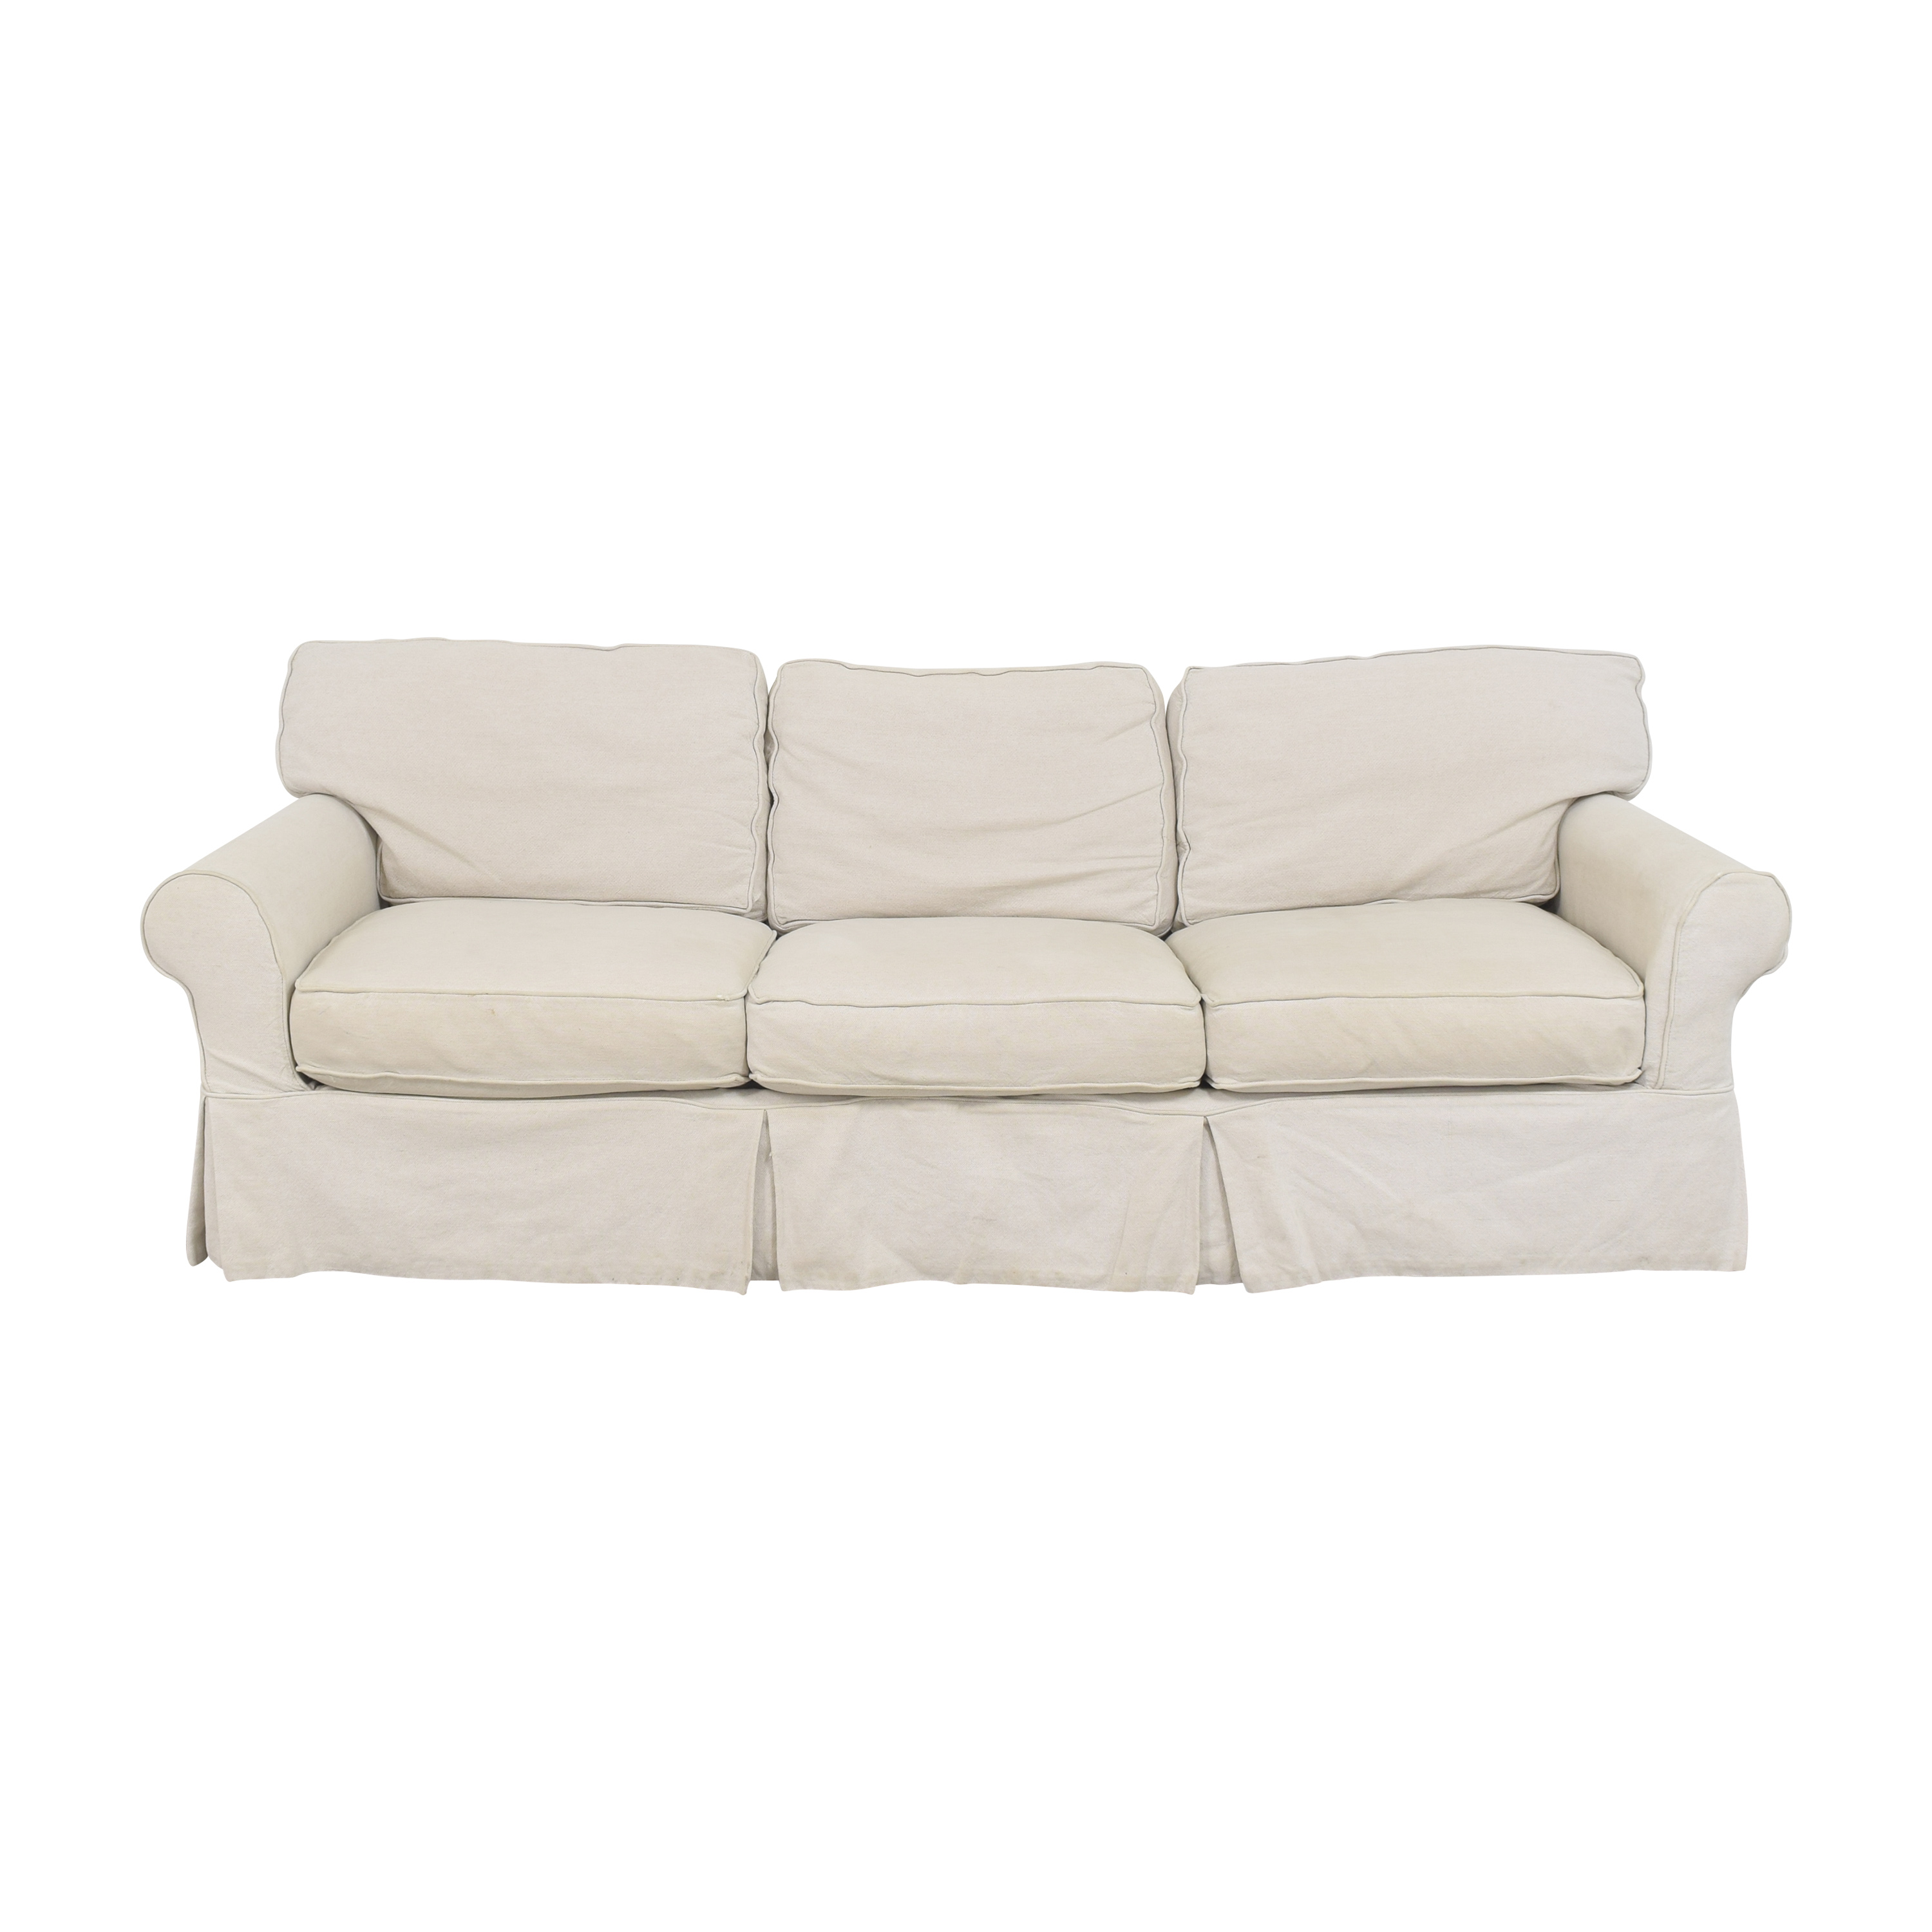 Crate & Barrel Crate & Barrel Slipcovered Roll Arm Sofa pa